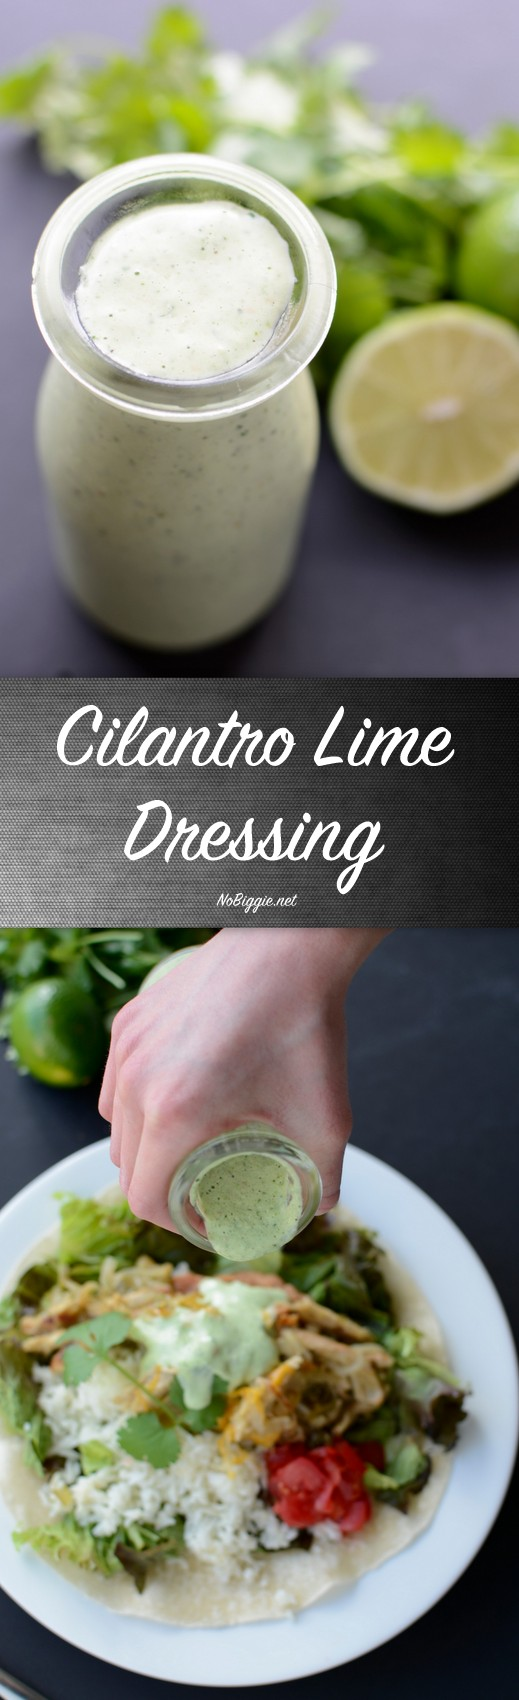 Creamy Cilantro Lime Dressing - a must have dressing that will liven up your Mexican salads. #cilantro #creamydressing #cilantrolimedressing #saladdressing